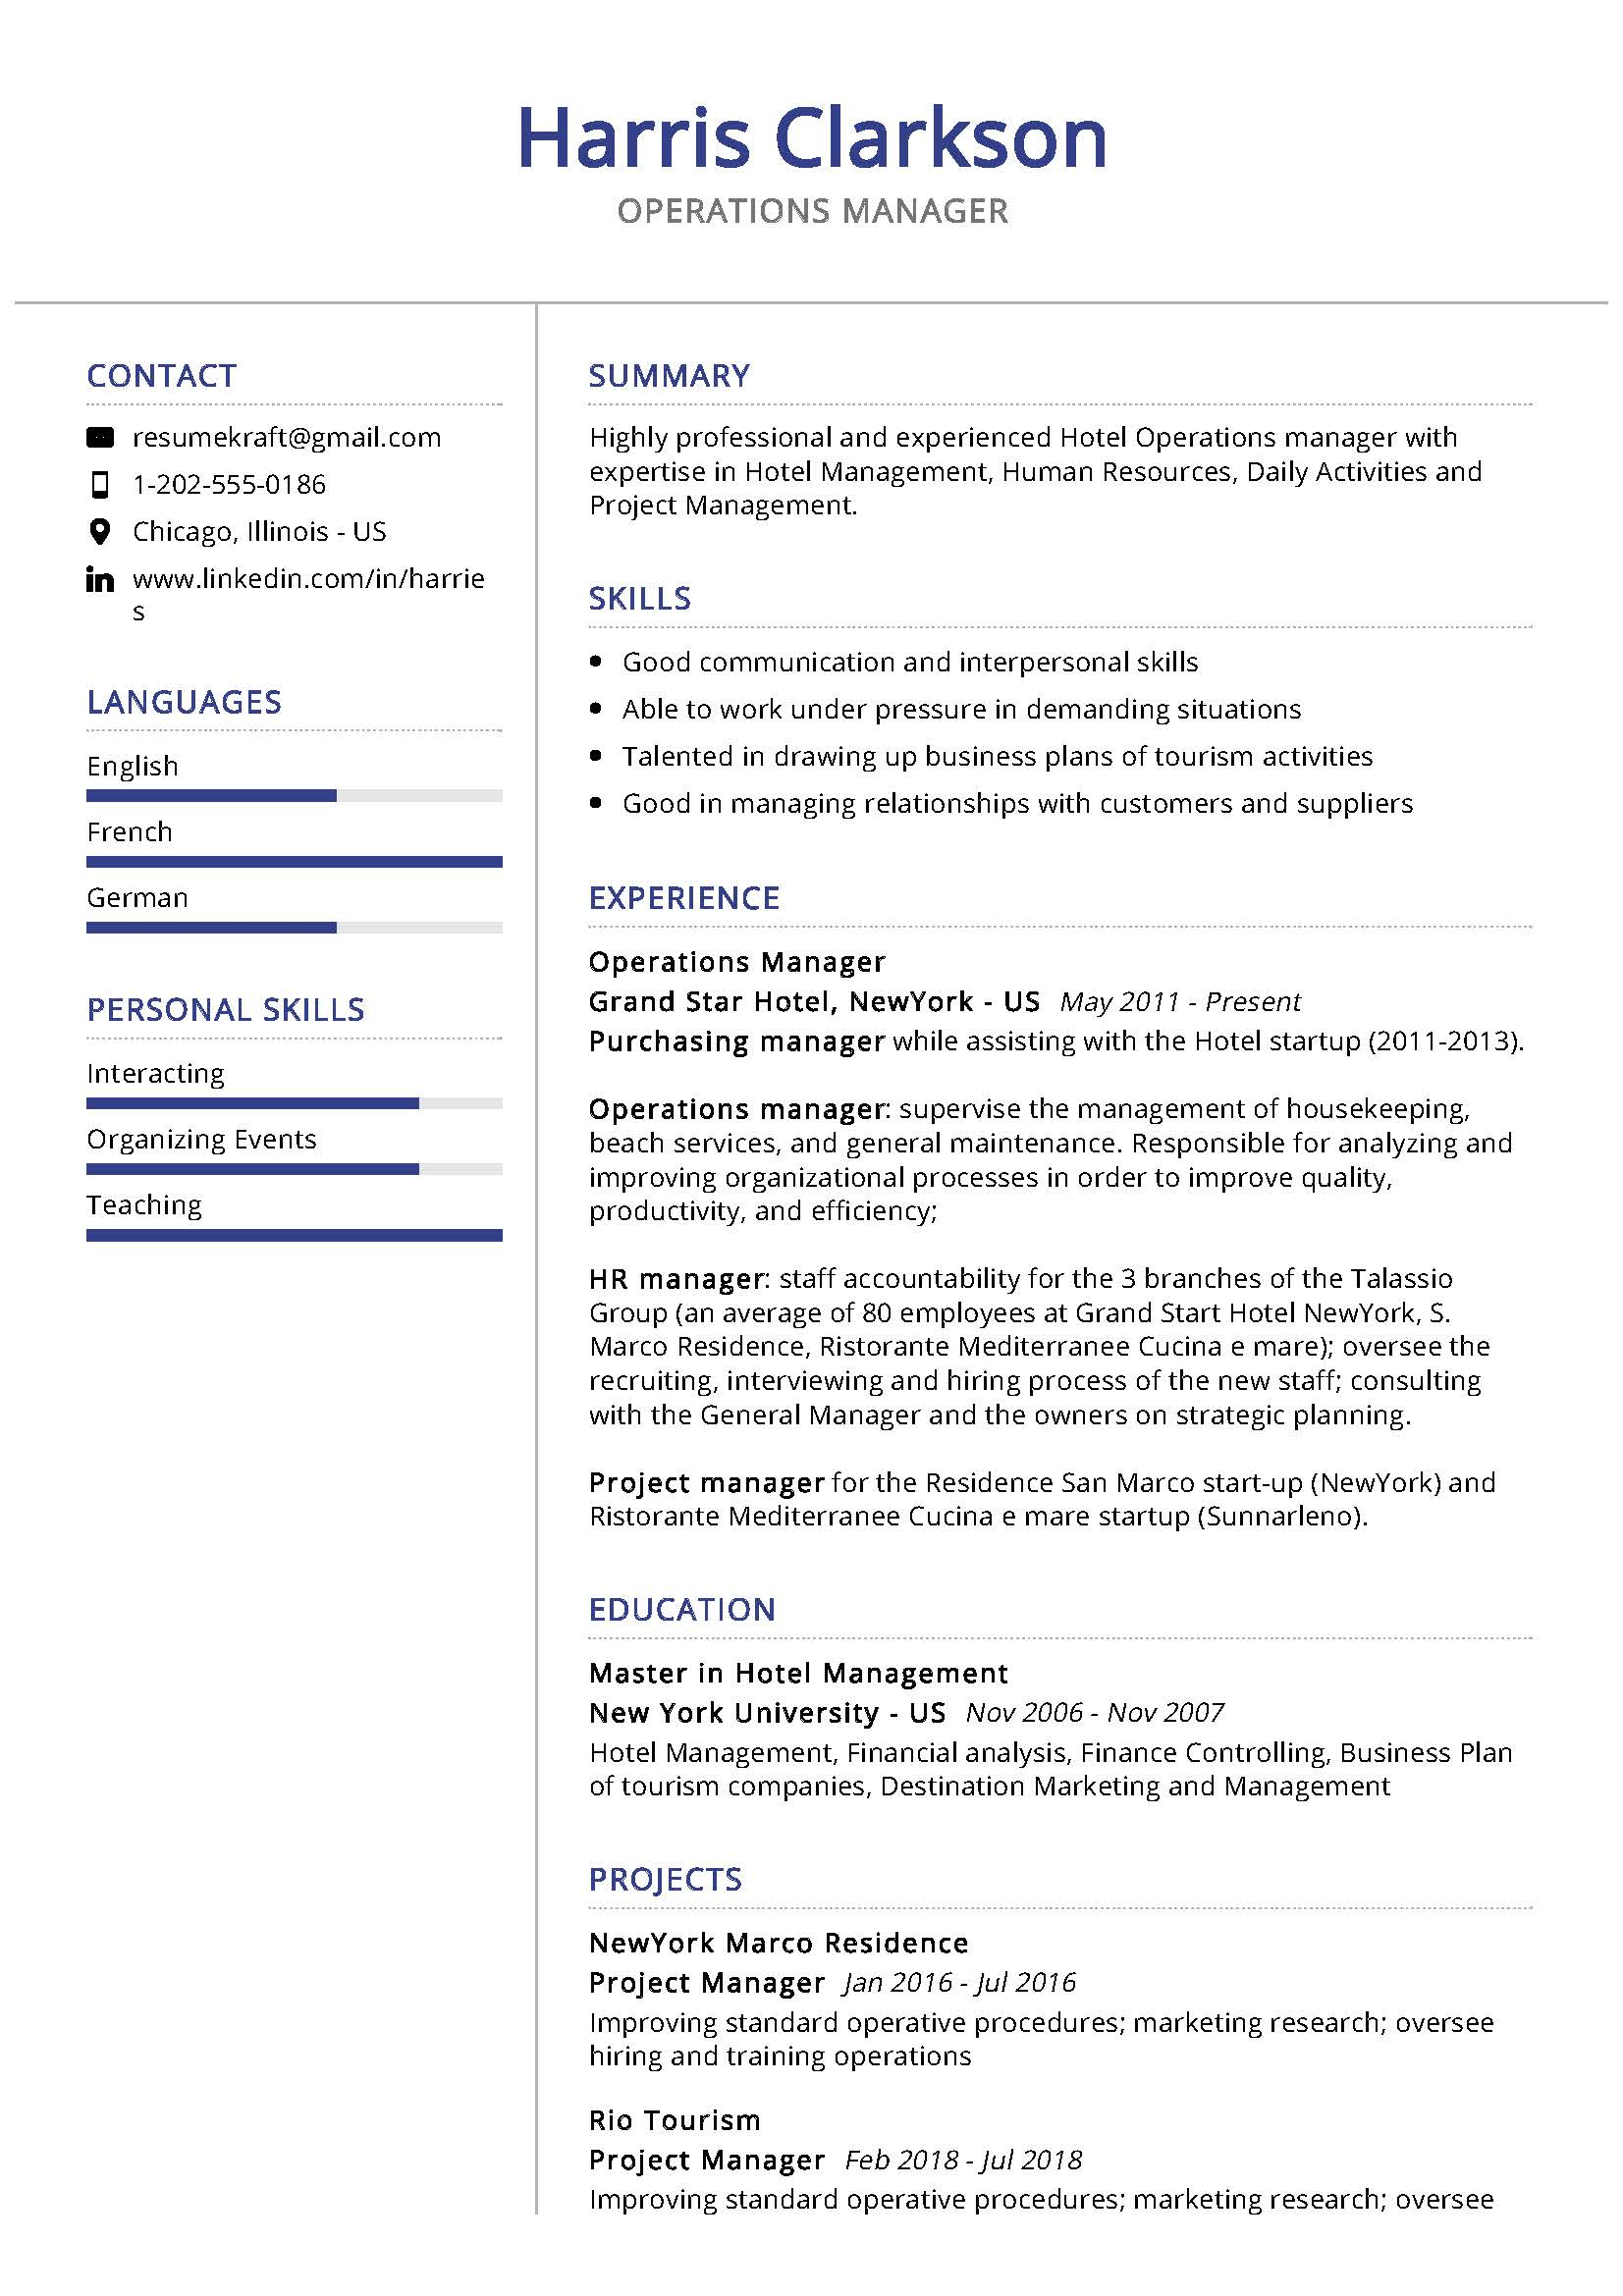 operations manager resume sample writing tips resumekraft project letter of job Resume Project Manager Resume 2020